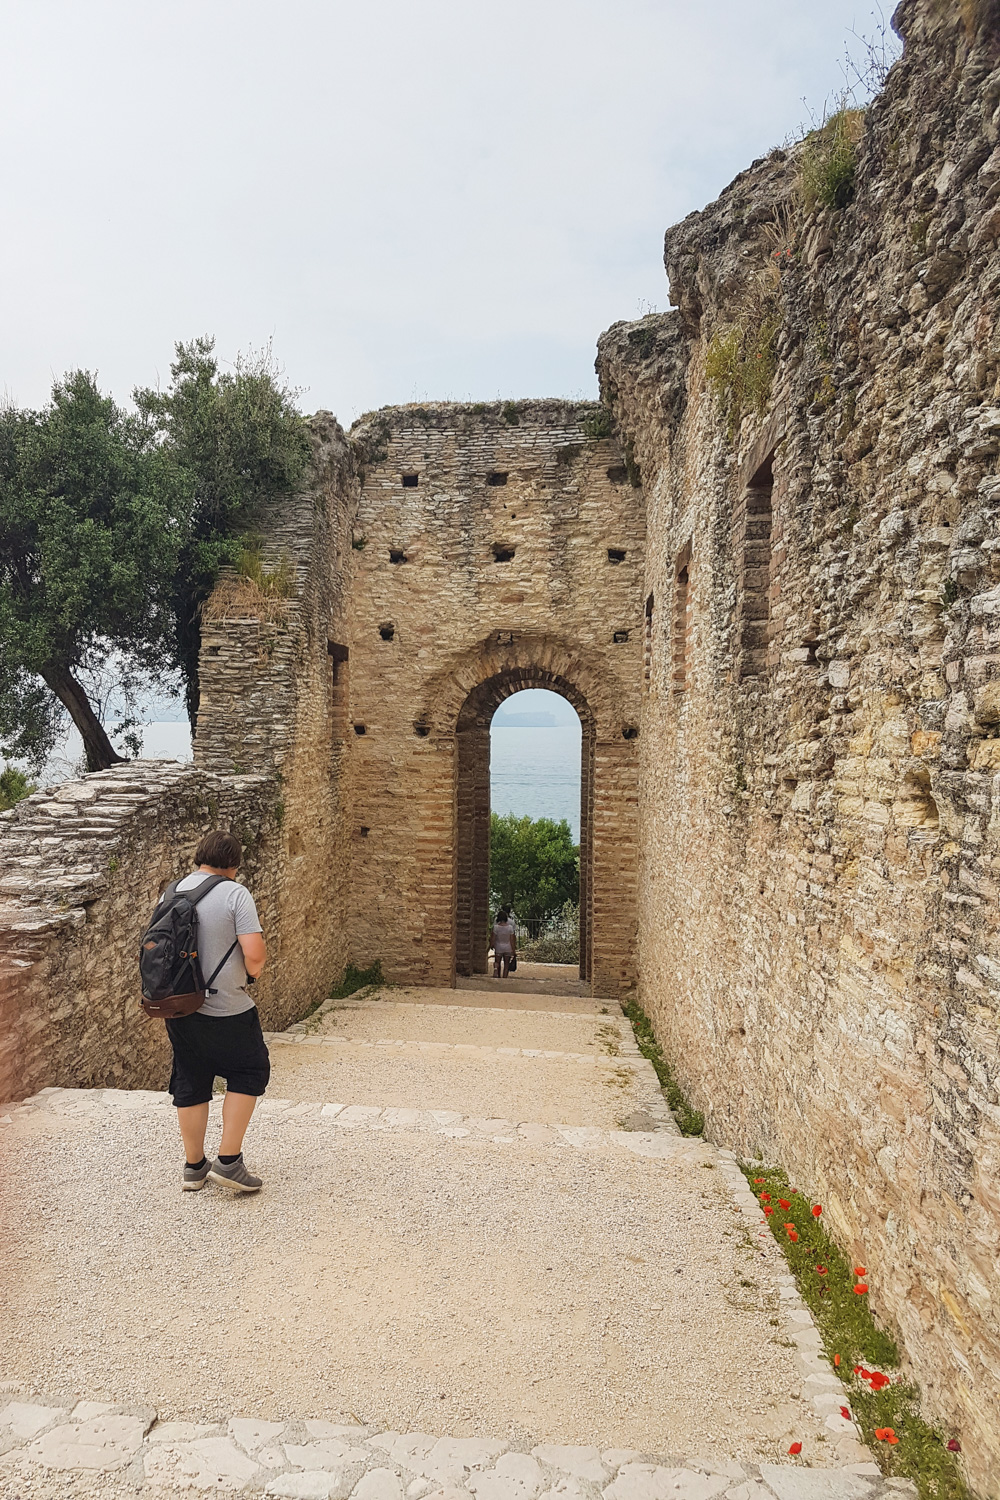 Grotte di Catullo in Sirmione, Lake Garda